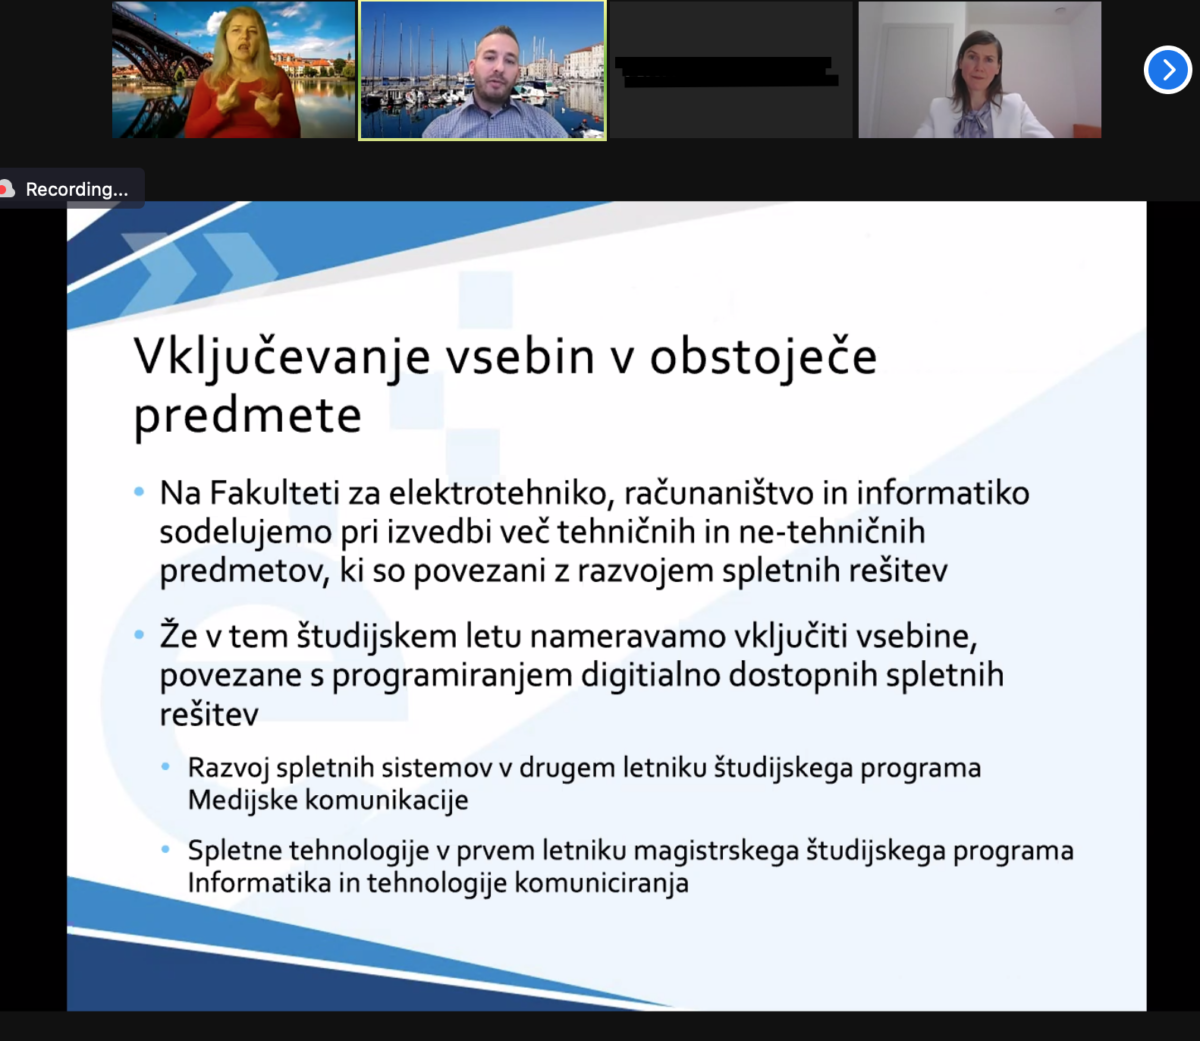 A screenshot of the PowerPoint presentation presented during the conference by a professor from the University of Maribor.